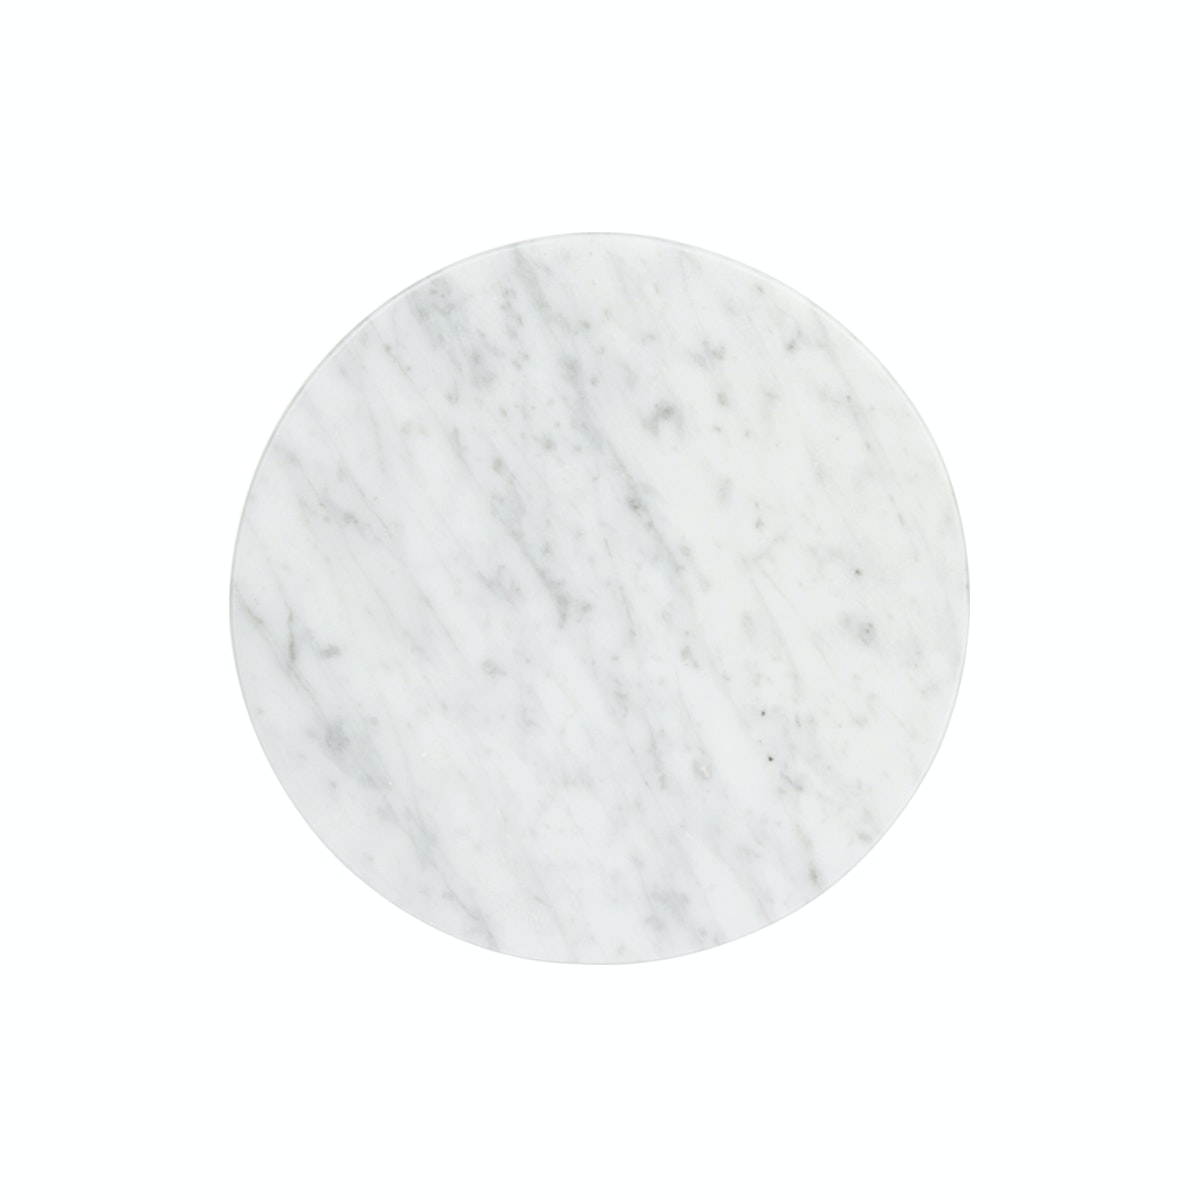 Glerry Home Decor Round White Moonstone Marble D15